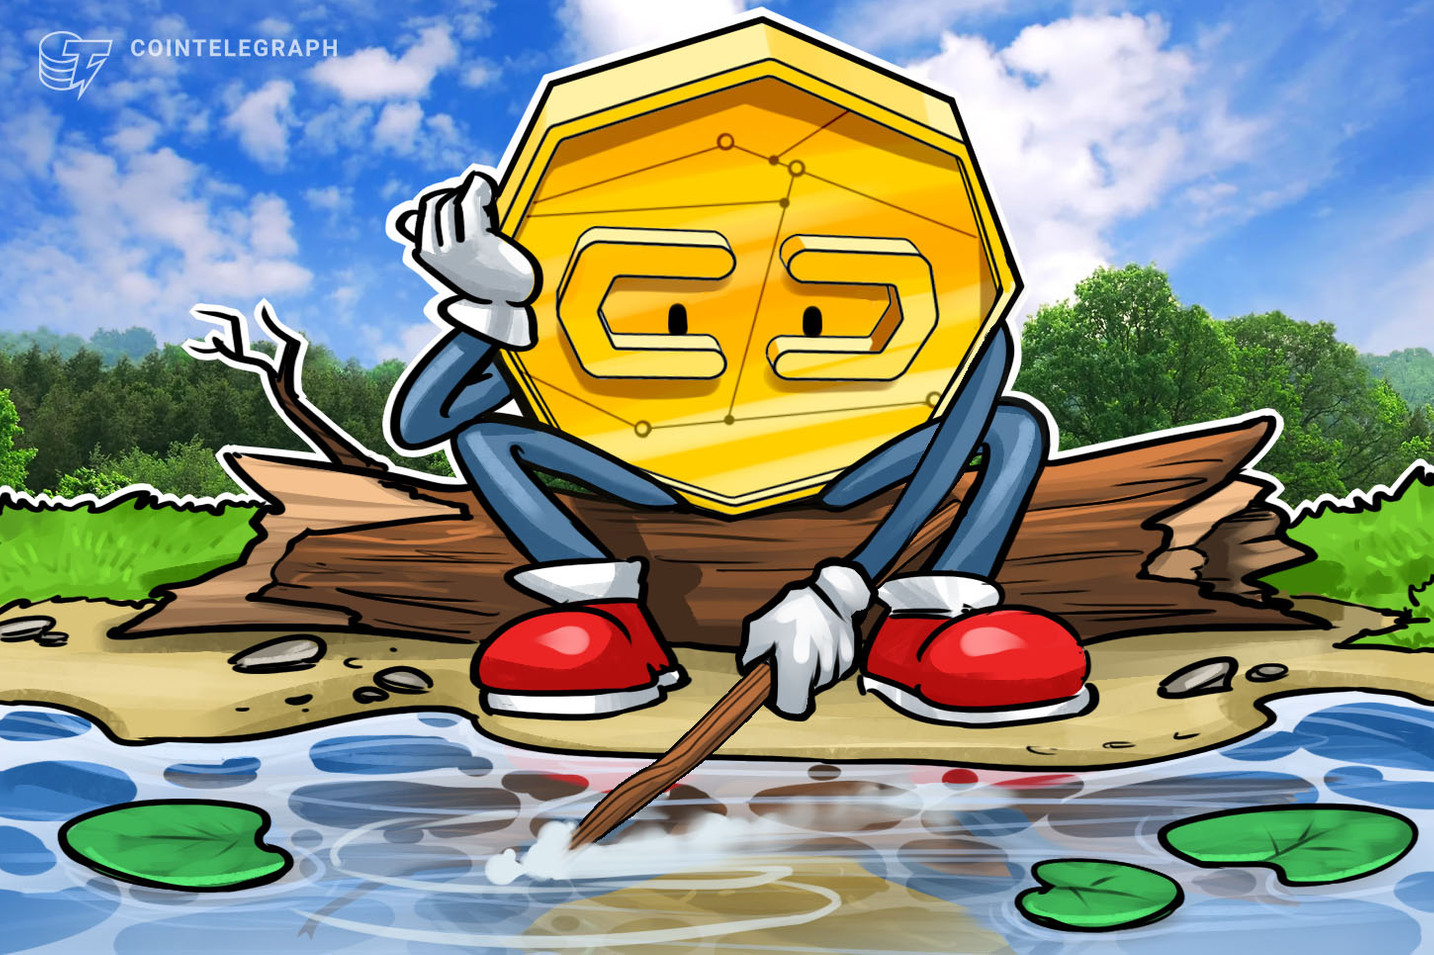 The Care Bears, Roger Ver, and Tesla shenanigans: Bad crypto news of the week